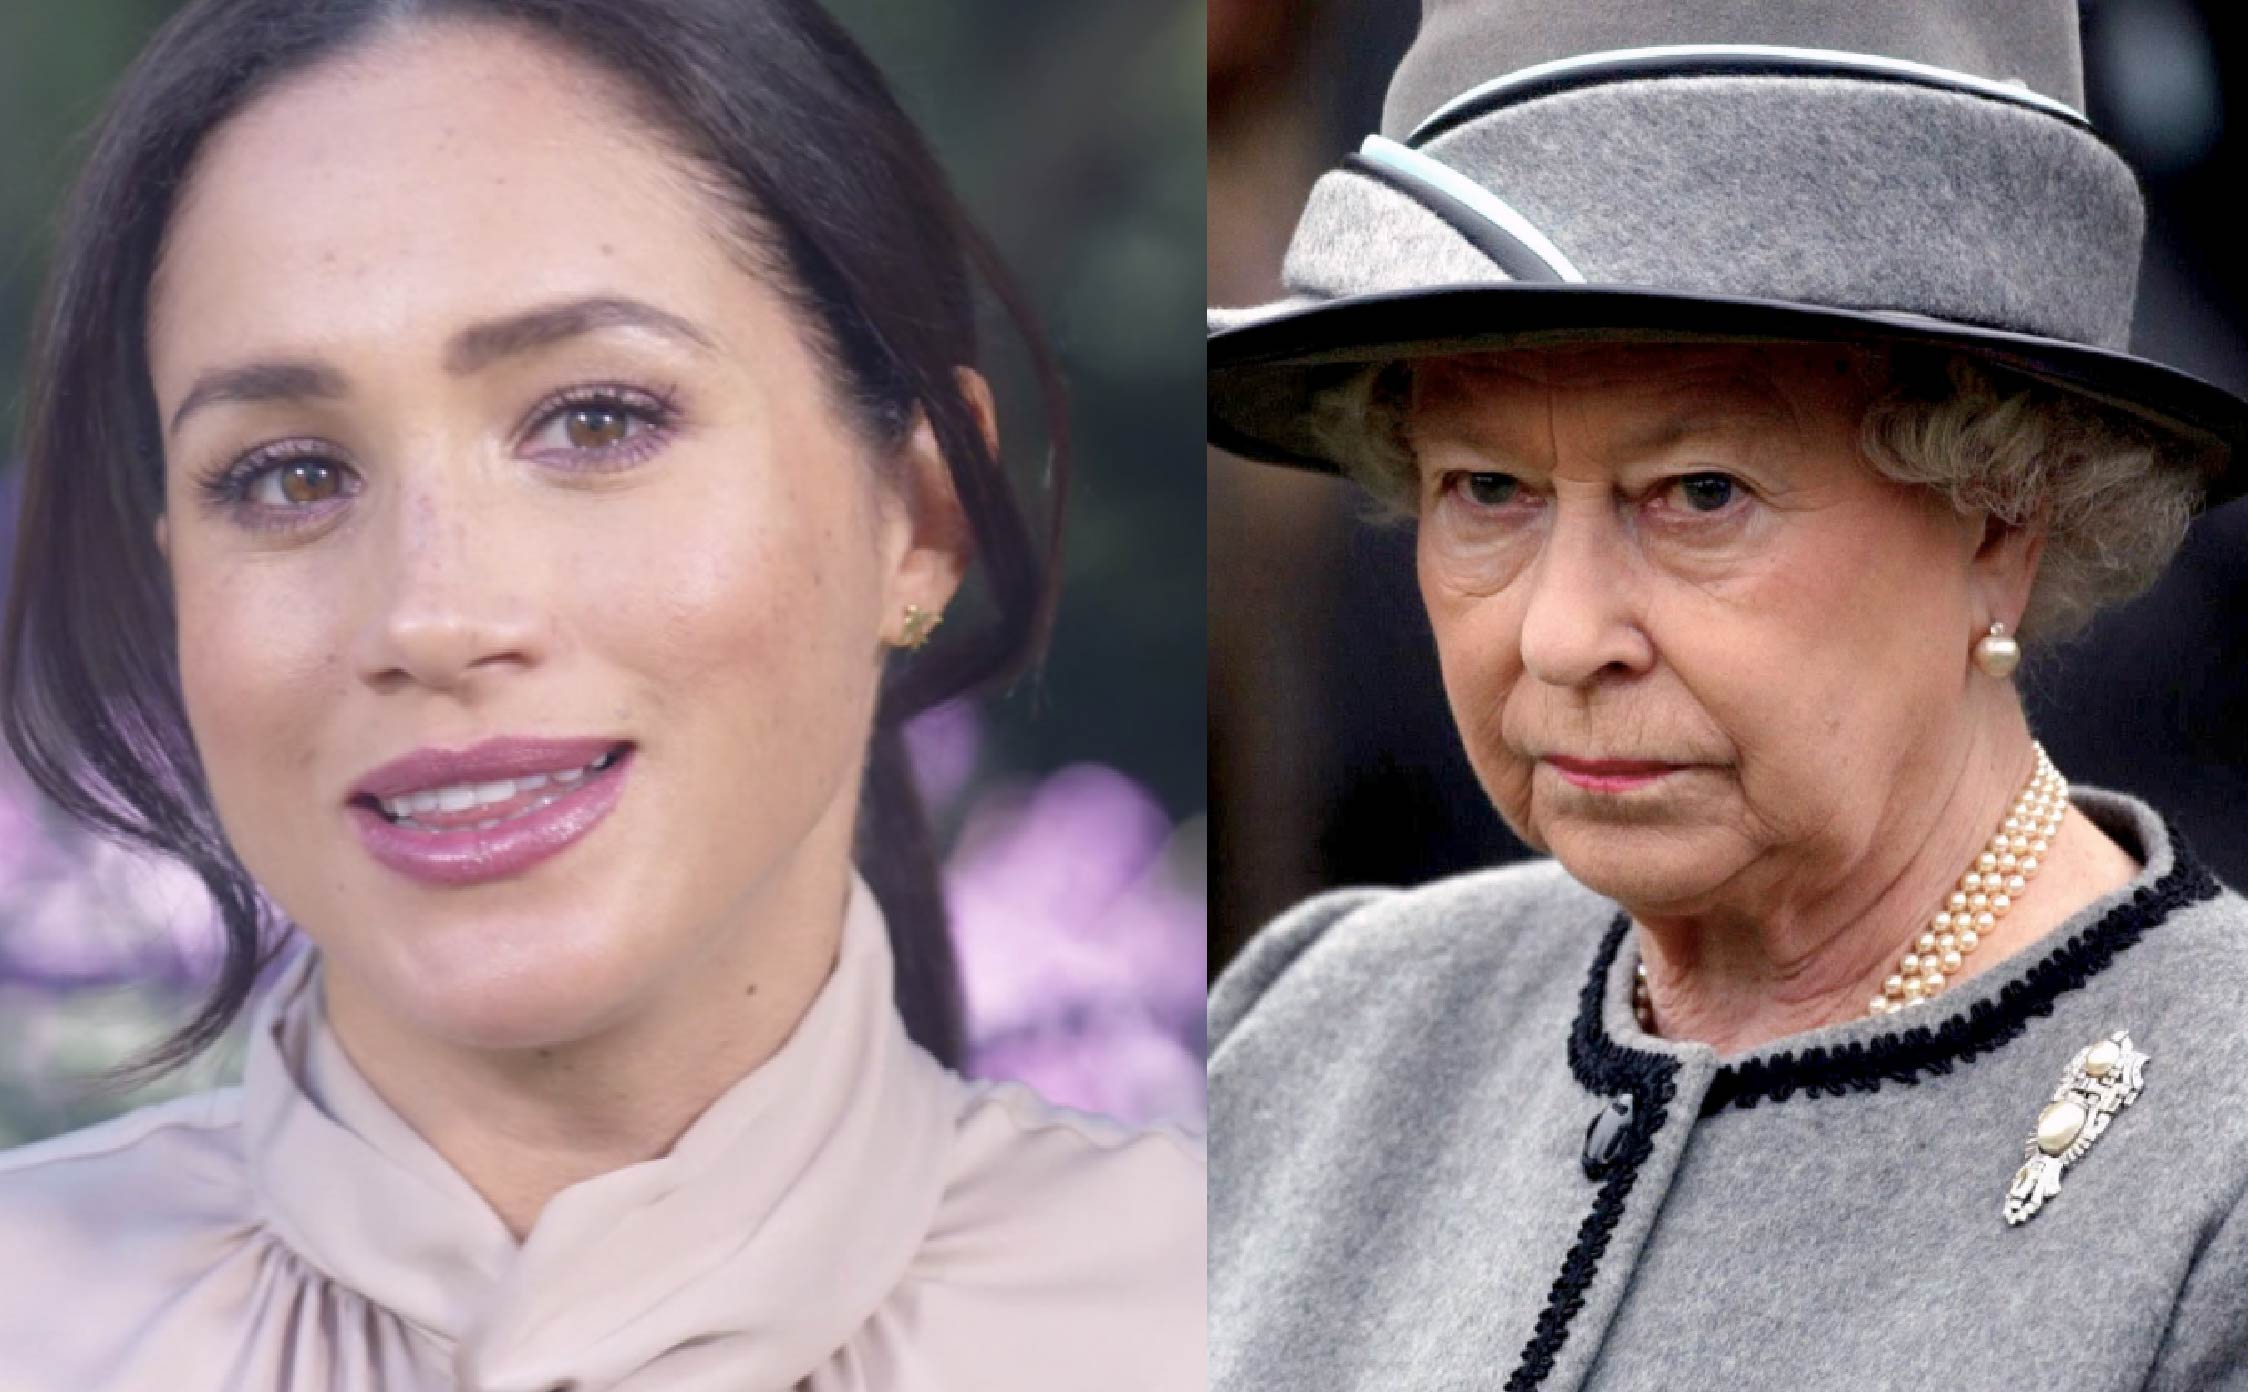 UK Lawmaker Just Revealed The Actual Damage Meghan Markle Unleashed on The Monarchy